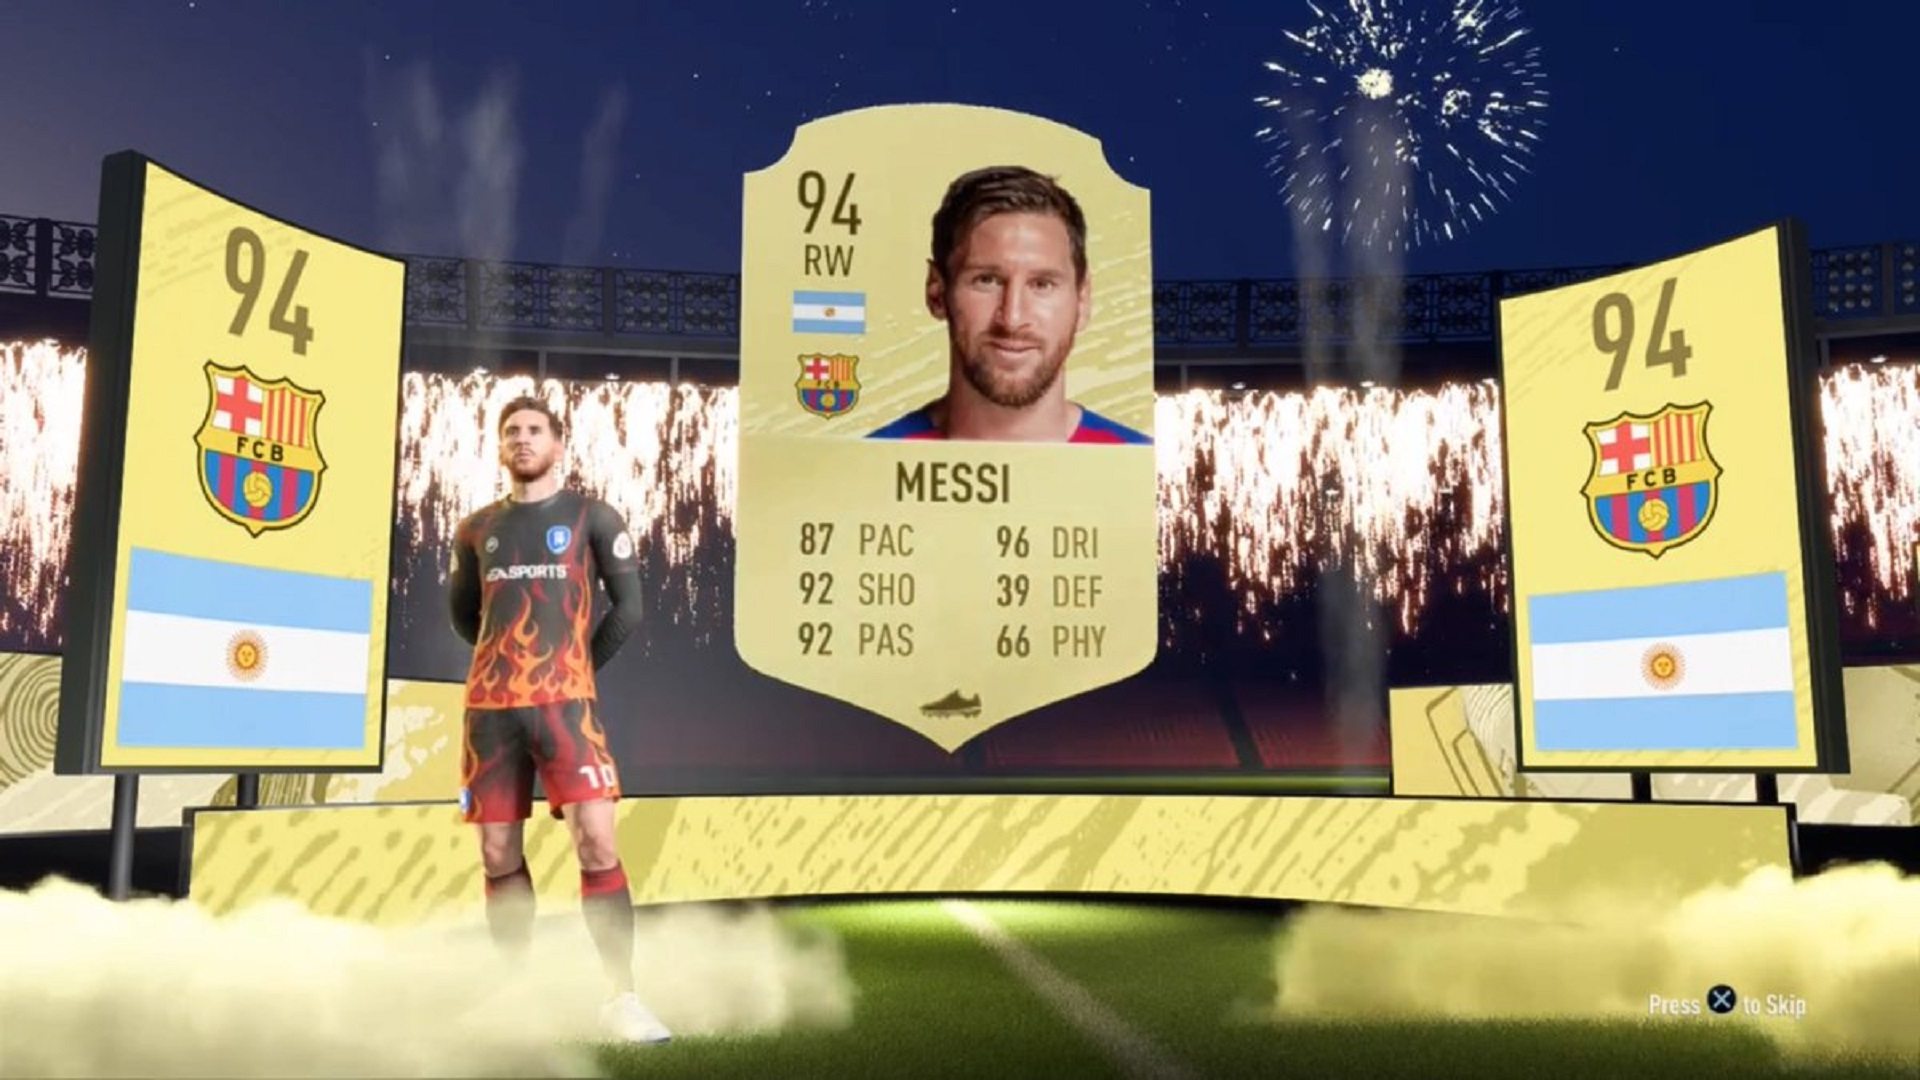 FIFA 20 Ultimate Team Pack Odds: What are the chances of getting Ronaldo or Messi in a pack?